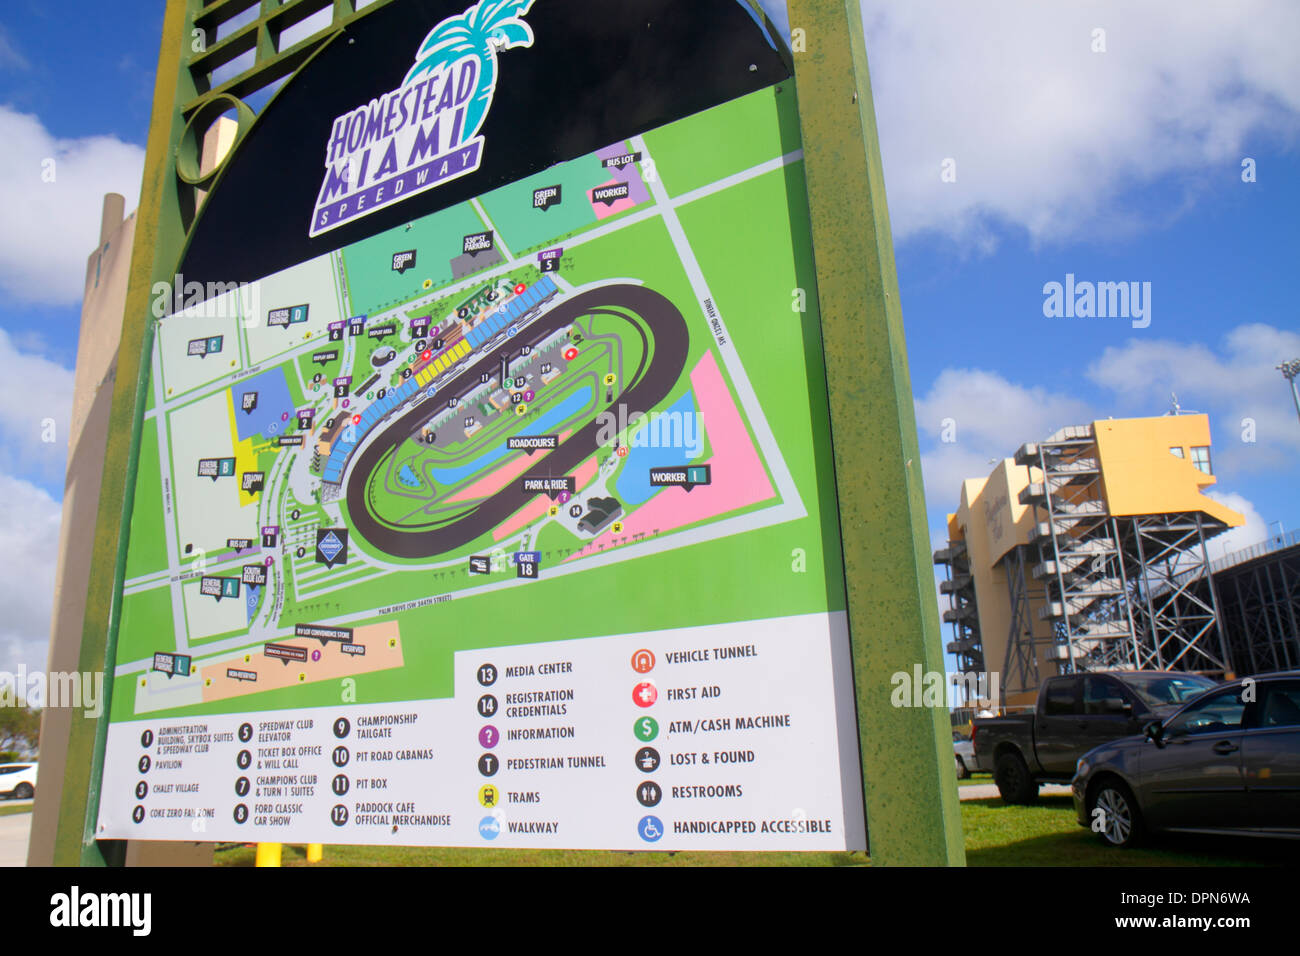 Map Of Homestead Florida.Miami Homestead Florida Speedway Sign Map Information Stock Photo